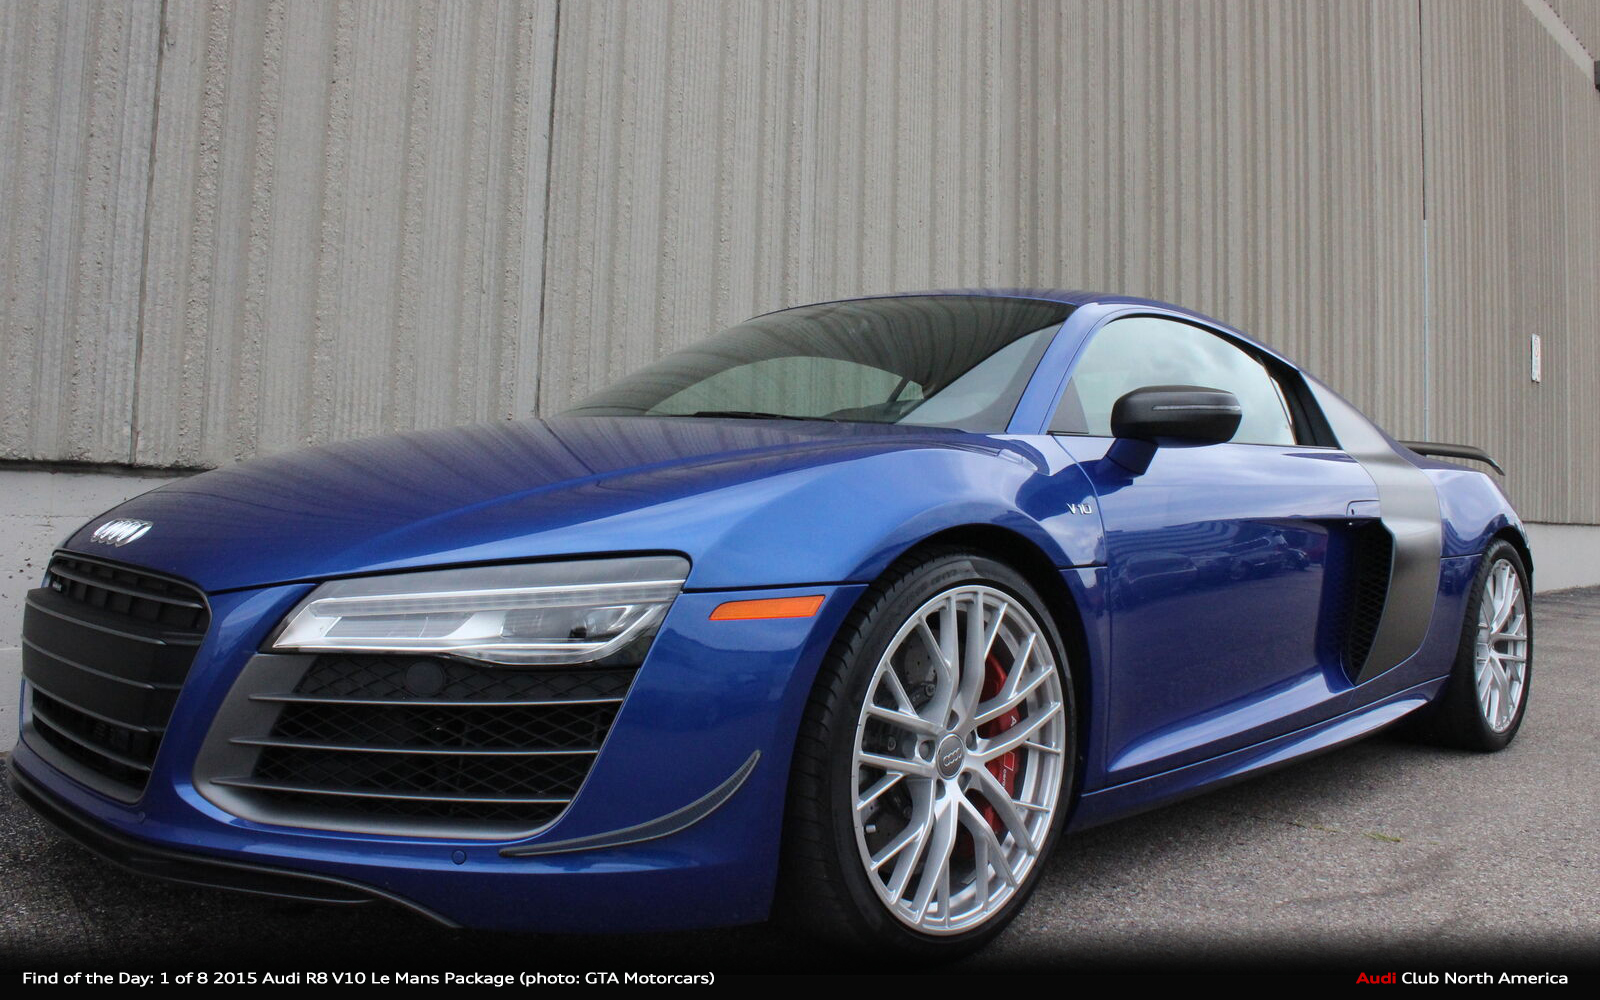 Find of the Day: 1 of 8 2015 Audi R8 V10 Le Mans